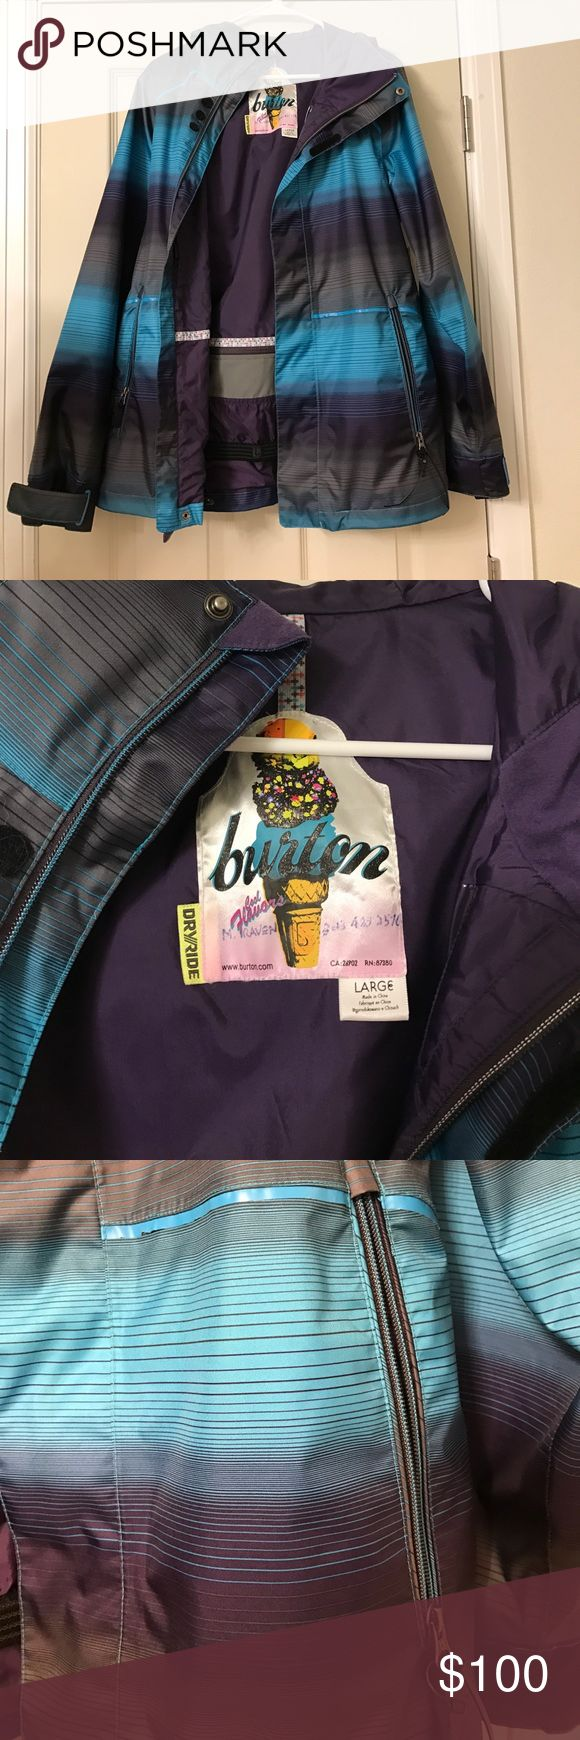 Burton Snowboarding Jacket Like new snowboarding jacket.  Worn twice.  Only flaw is my Dad wrote my name on the inside label because he's silly.  It I super comfy and GORGEOUS.   Has many many pockets and of course is fully waterproof. Burton Jackets & Coats Utility Jackets